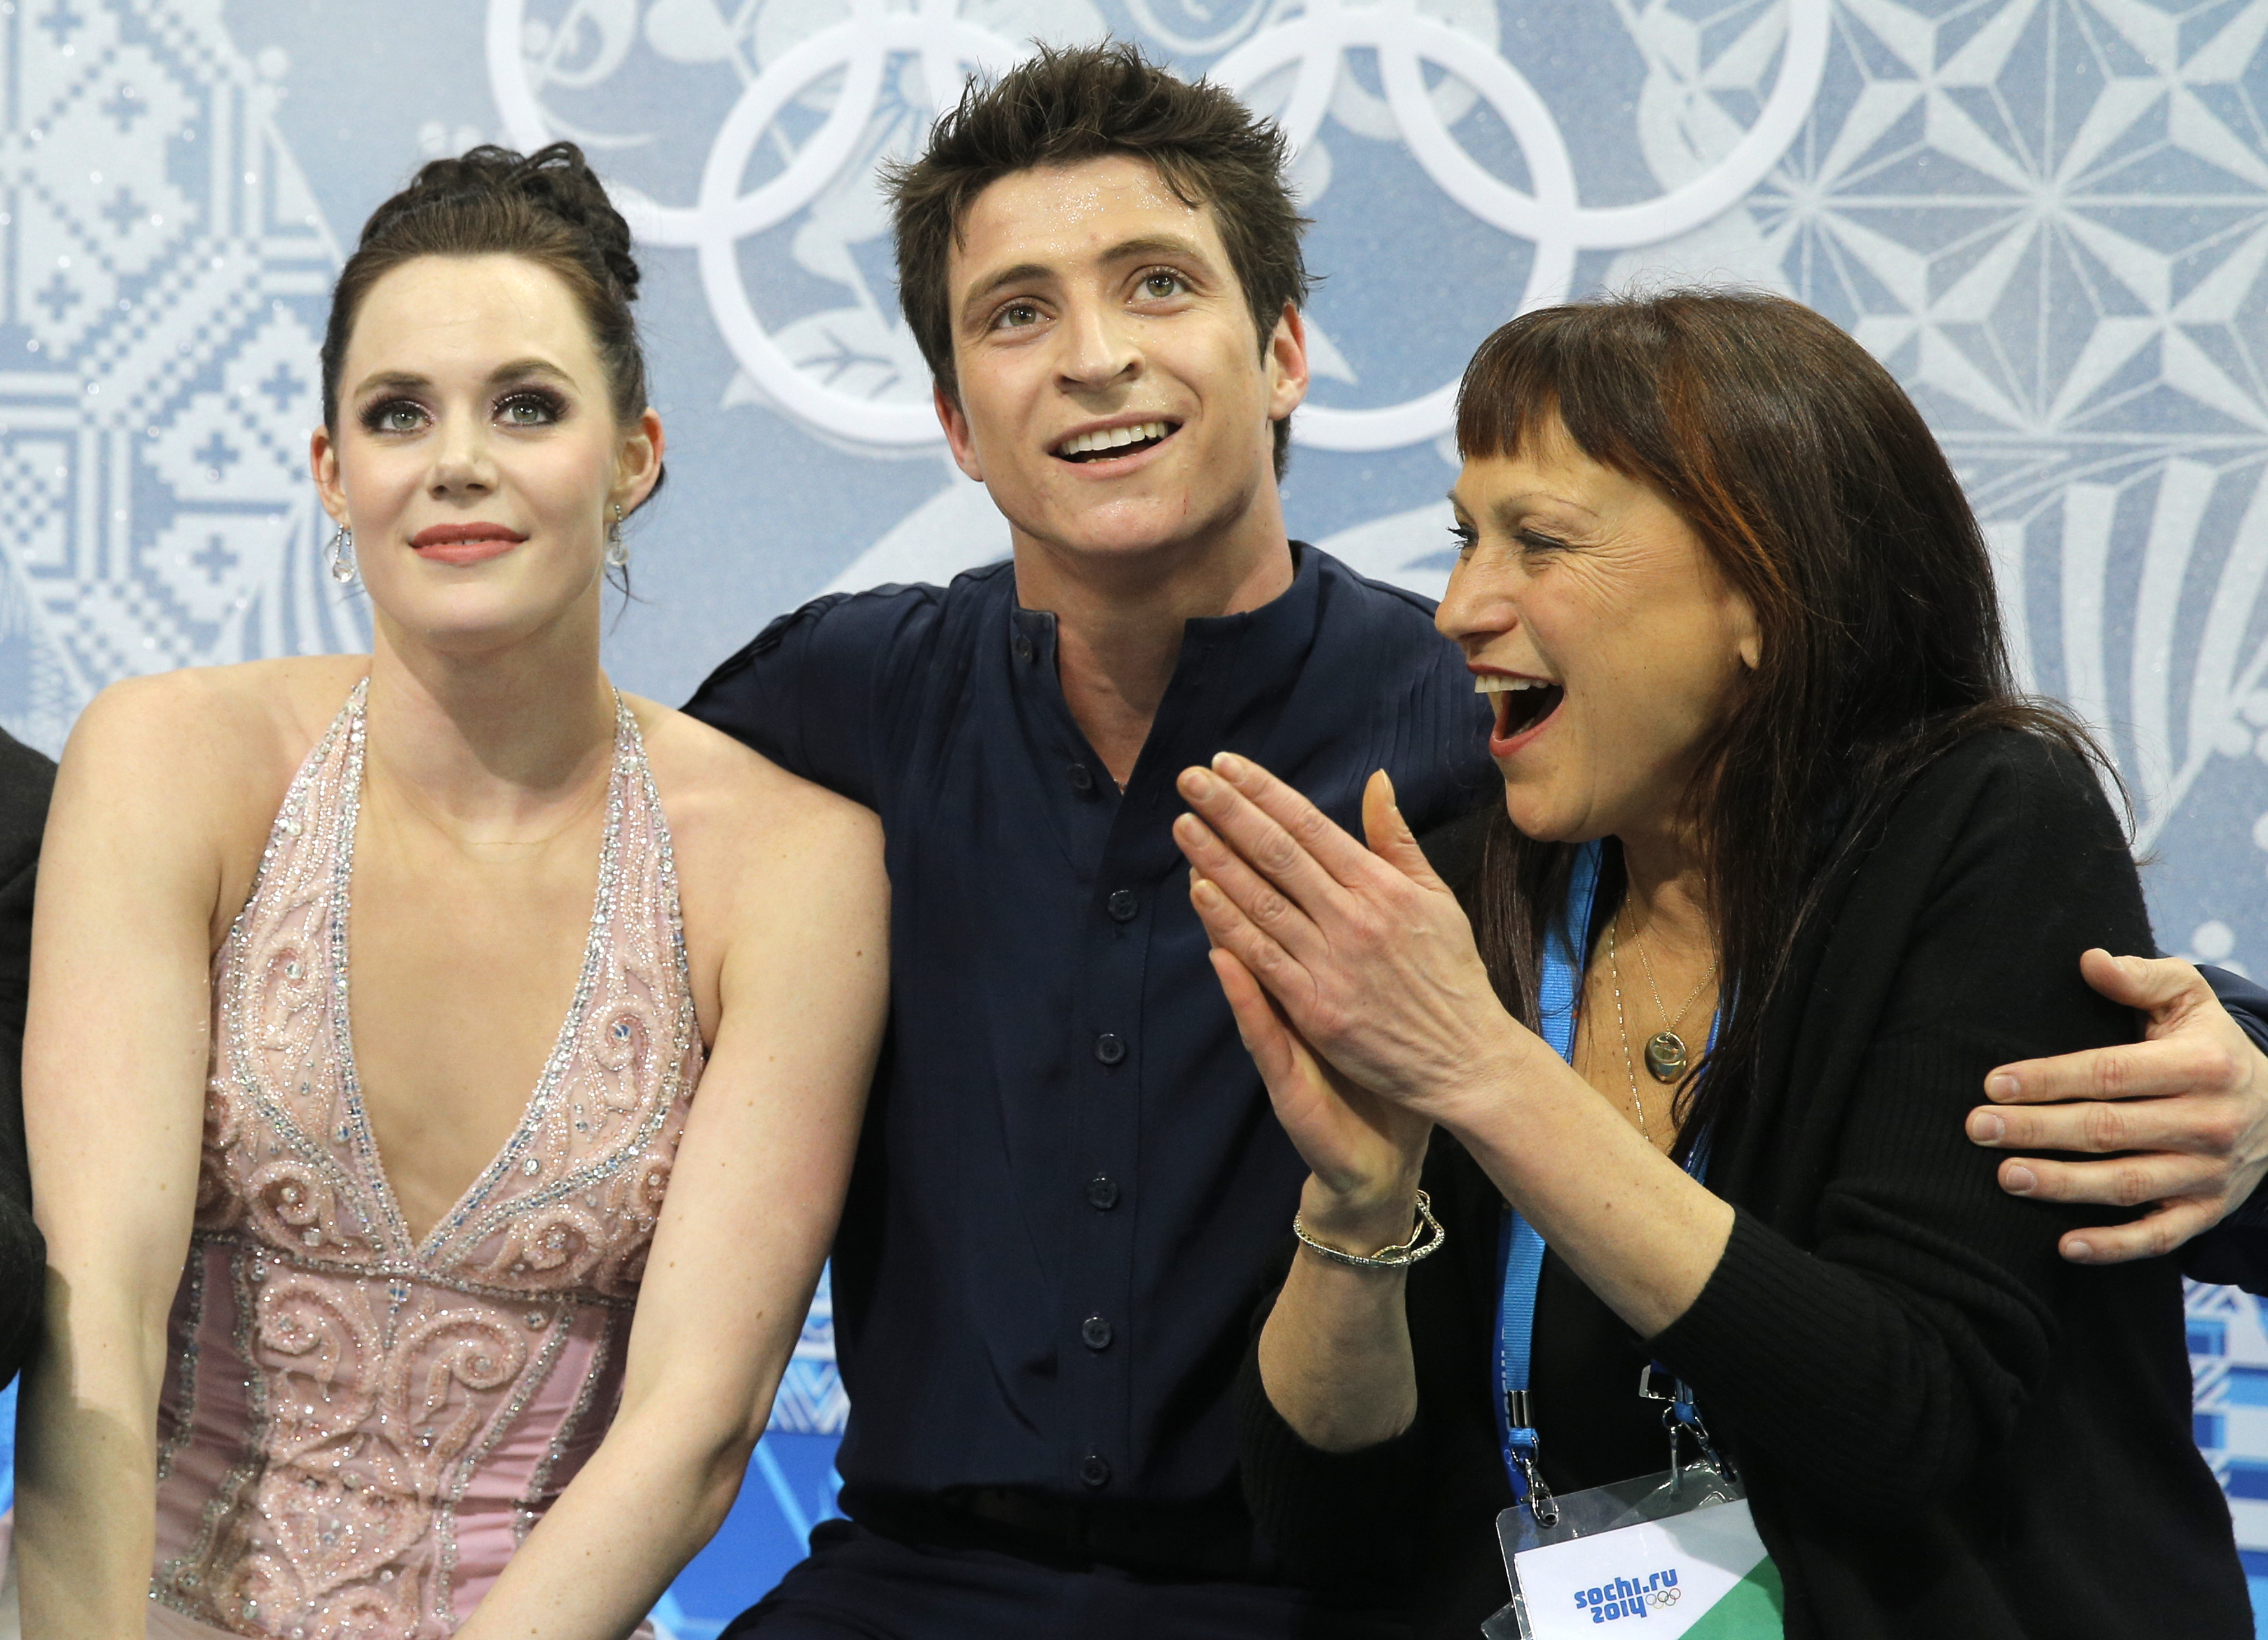 Tessa Virtue and Scott Moir of Canada and their coach Marina Zueva, right, wait in the results area after competing in the ice dance free dance figure skating finals at the Iceberg Skating Palace during the 2014 Winter Olympics, Monday, Feb. 17, 2014, in Sochi, Russia. (AP Photo/Vadim Ghirda)